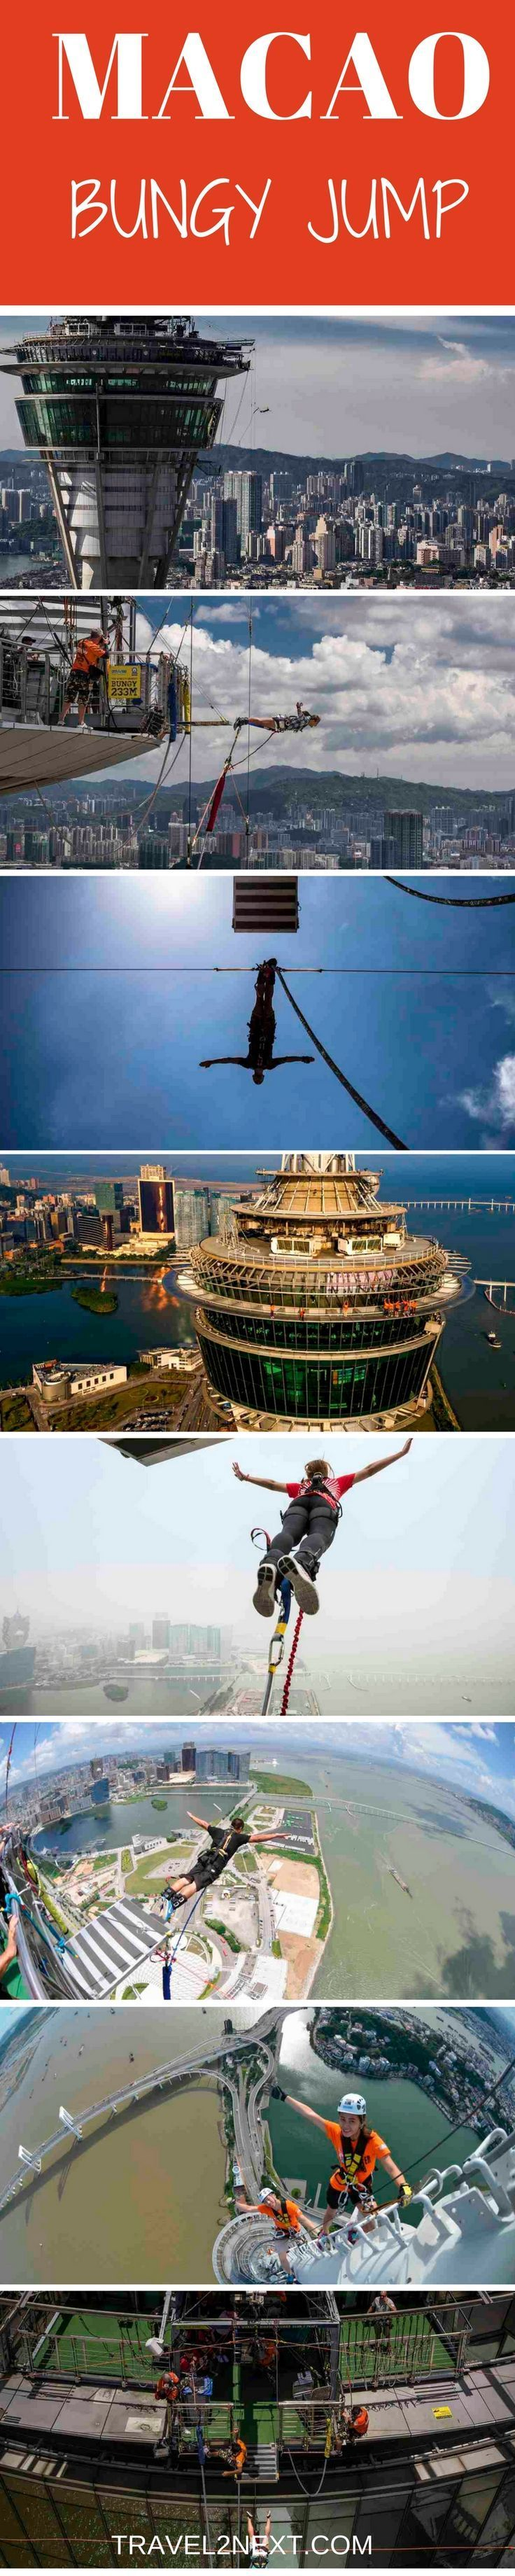 Macau Bungy Jump – A blow by blow description of AJ Hacket''s Macau Tower bungee jump, the highest in the world.